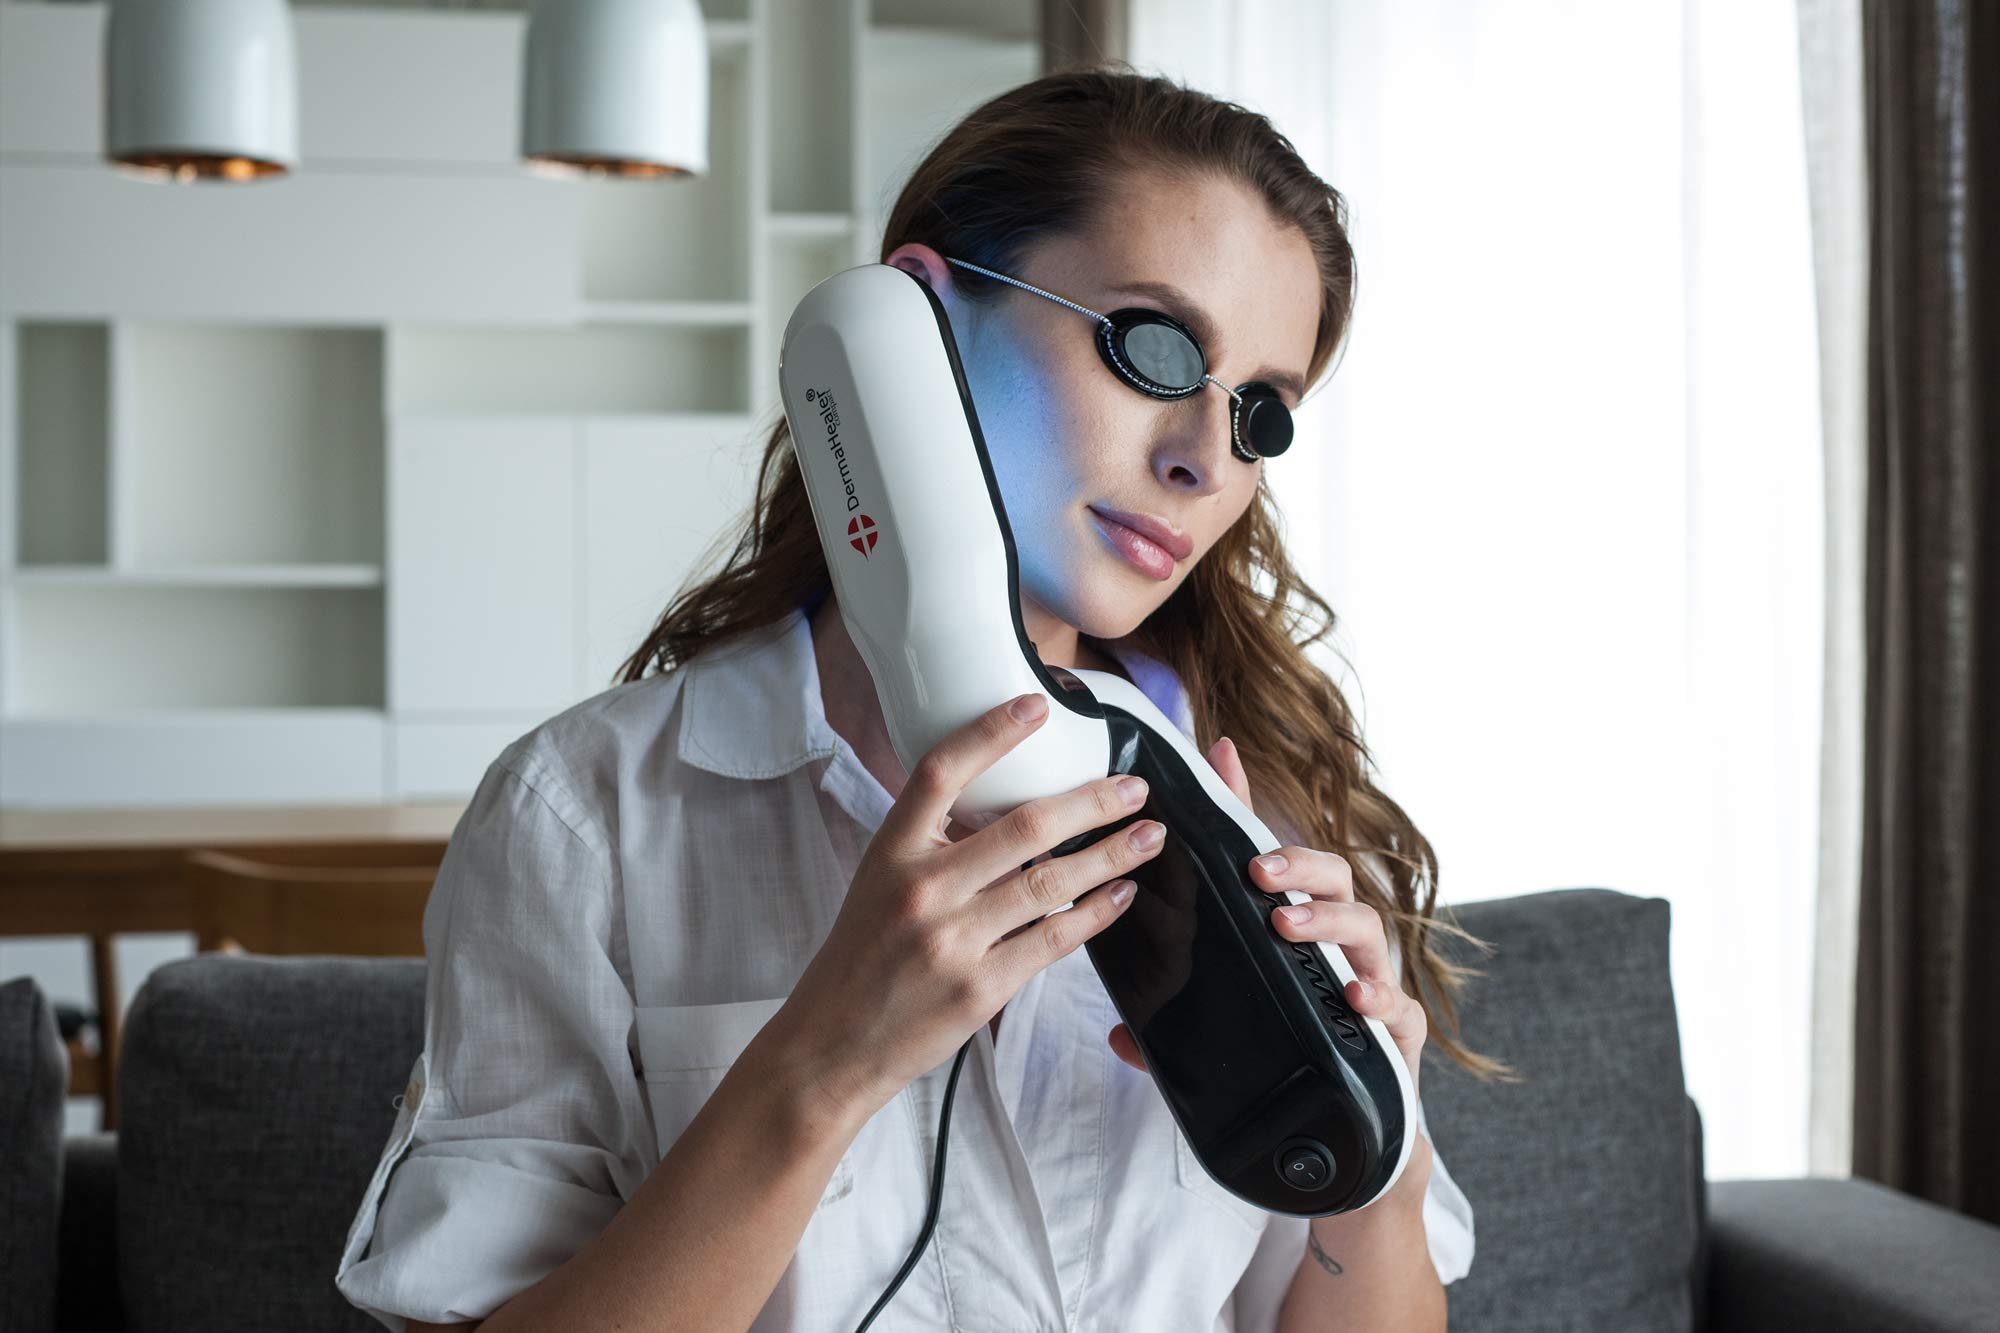 DermaHealer UVB Light Therapy Home UV Phototherapy Lamp with Philips PL-S 9W/01 Light Bulb by DermaHealer (Image #4)